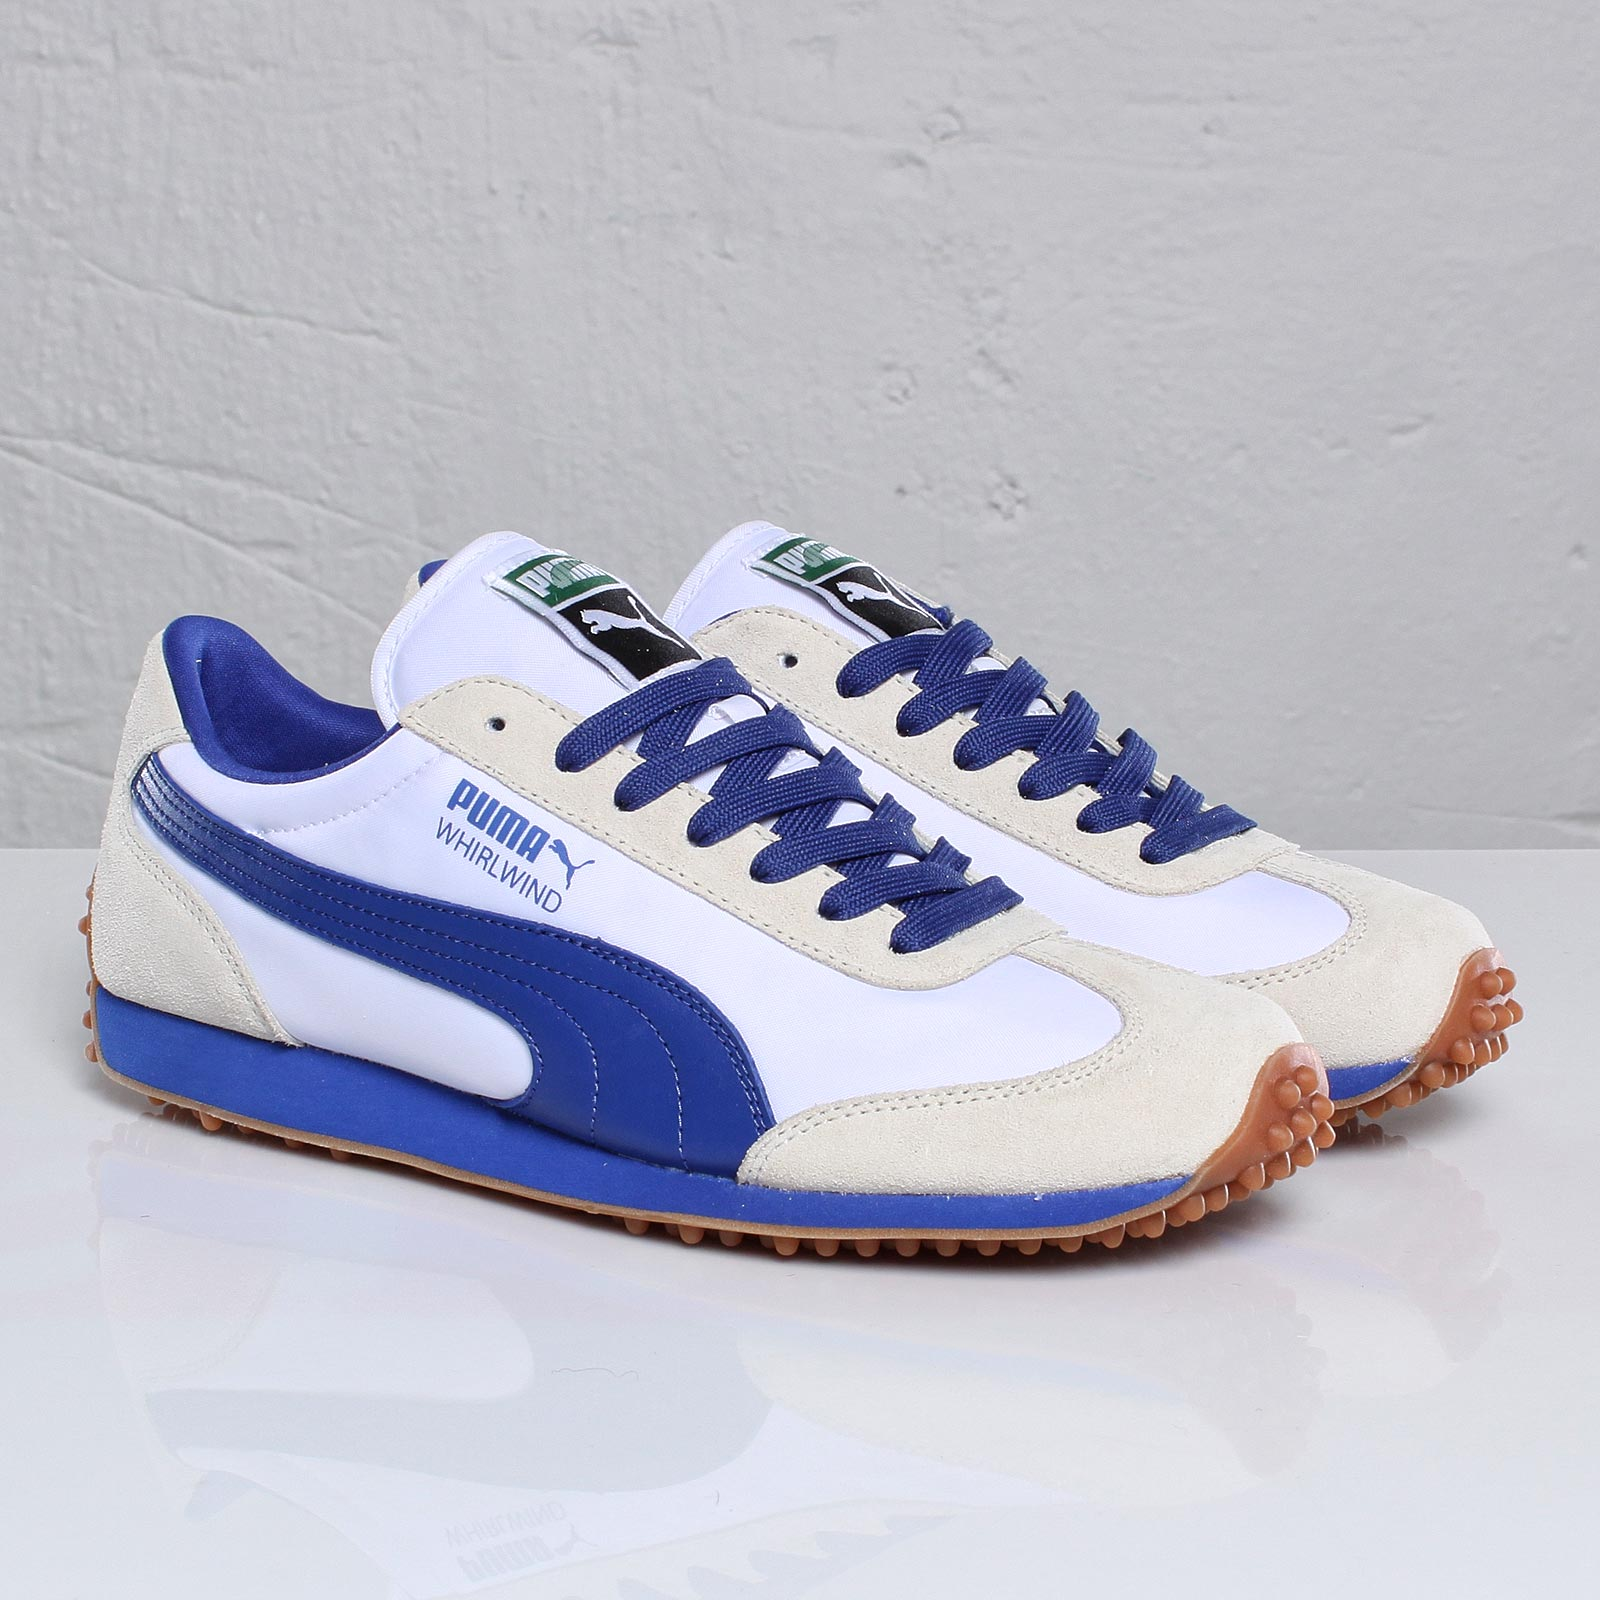 puma whirlwind for sale